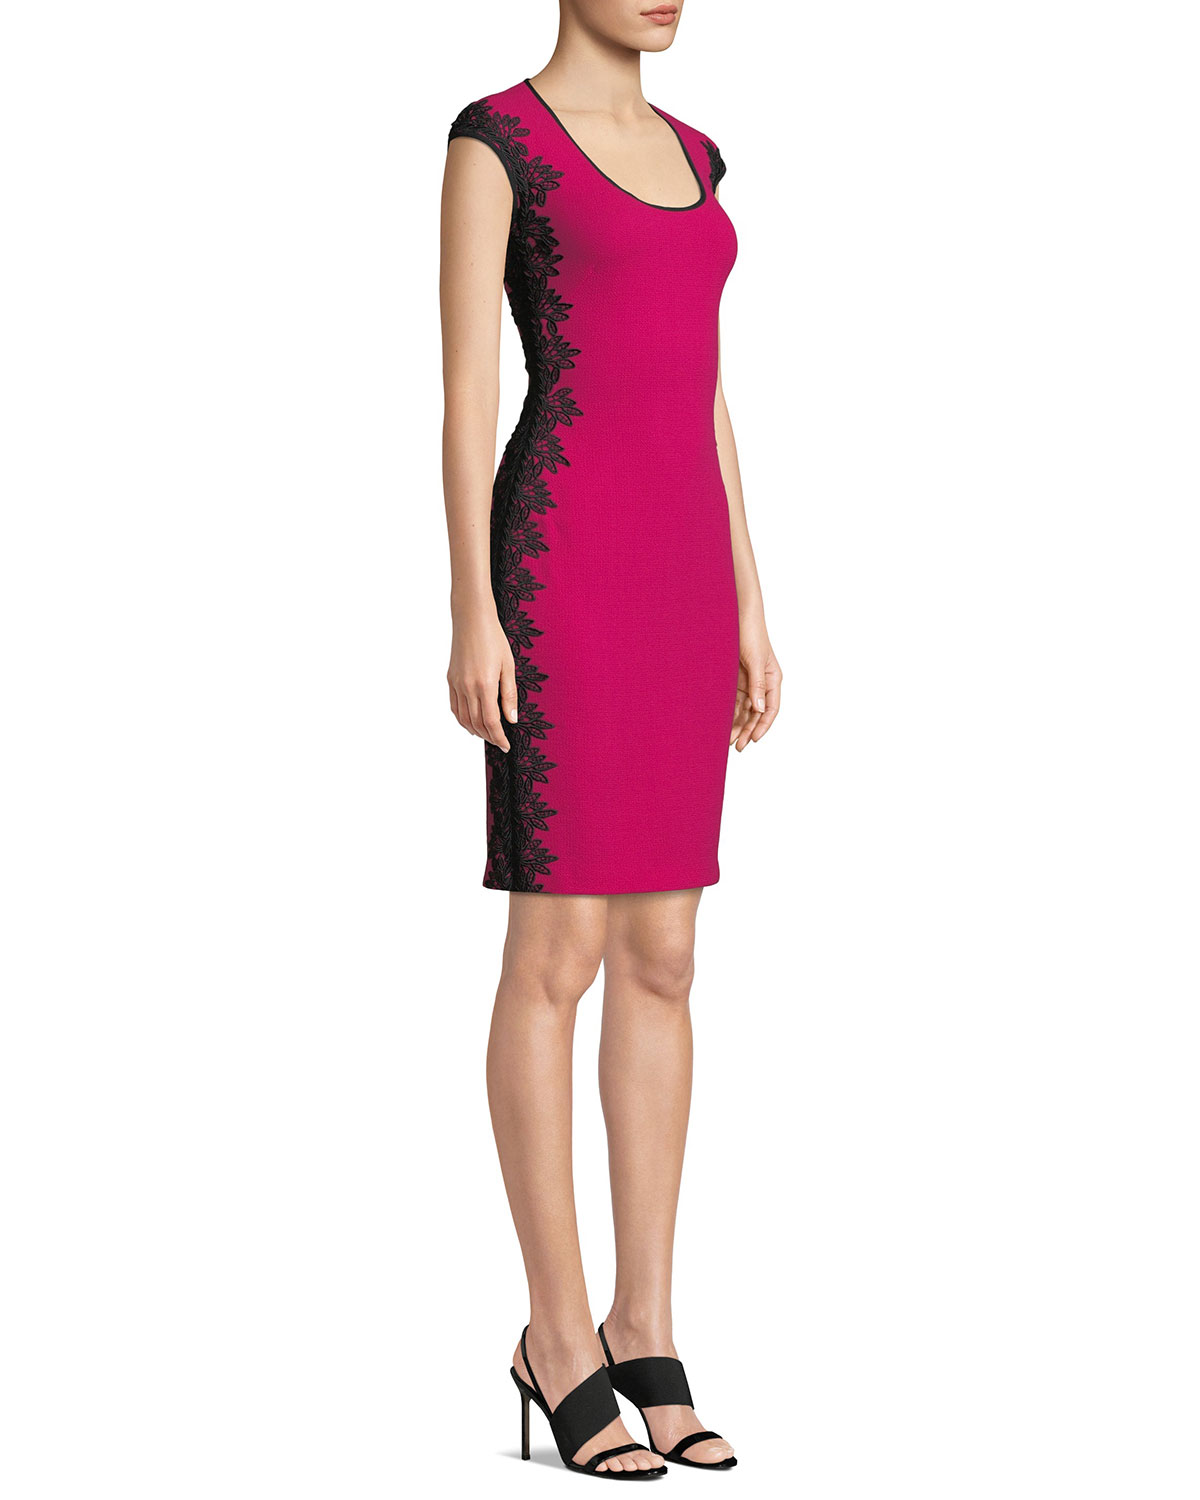 Scoop Neck Cocktail Dress W/ Lace Sides by Nk32 Naeem Khan